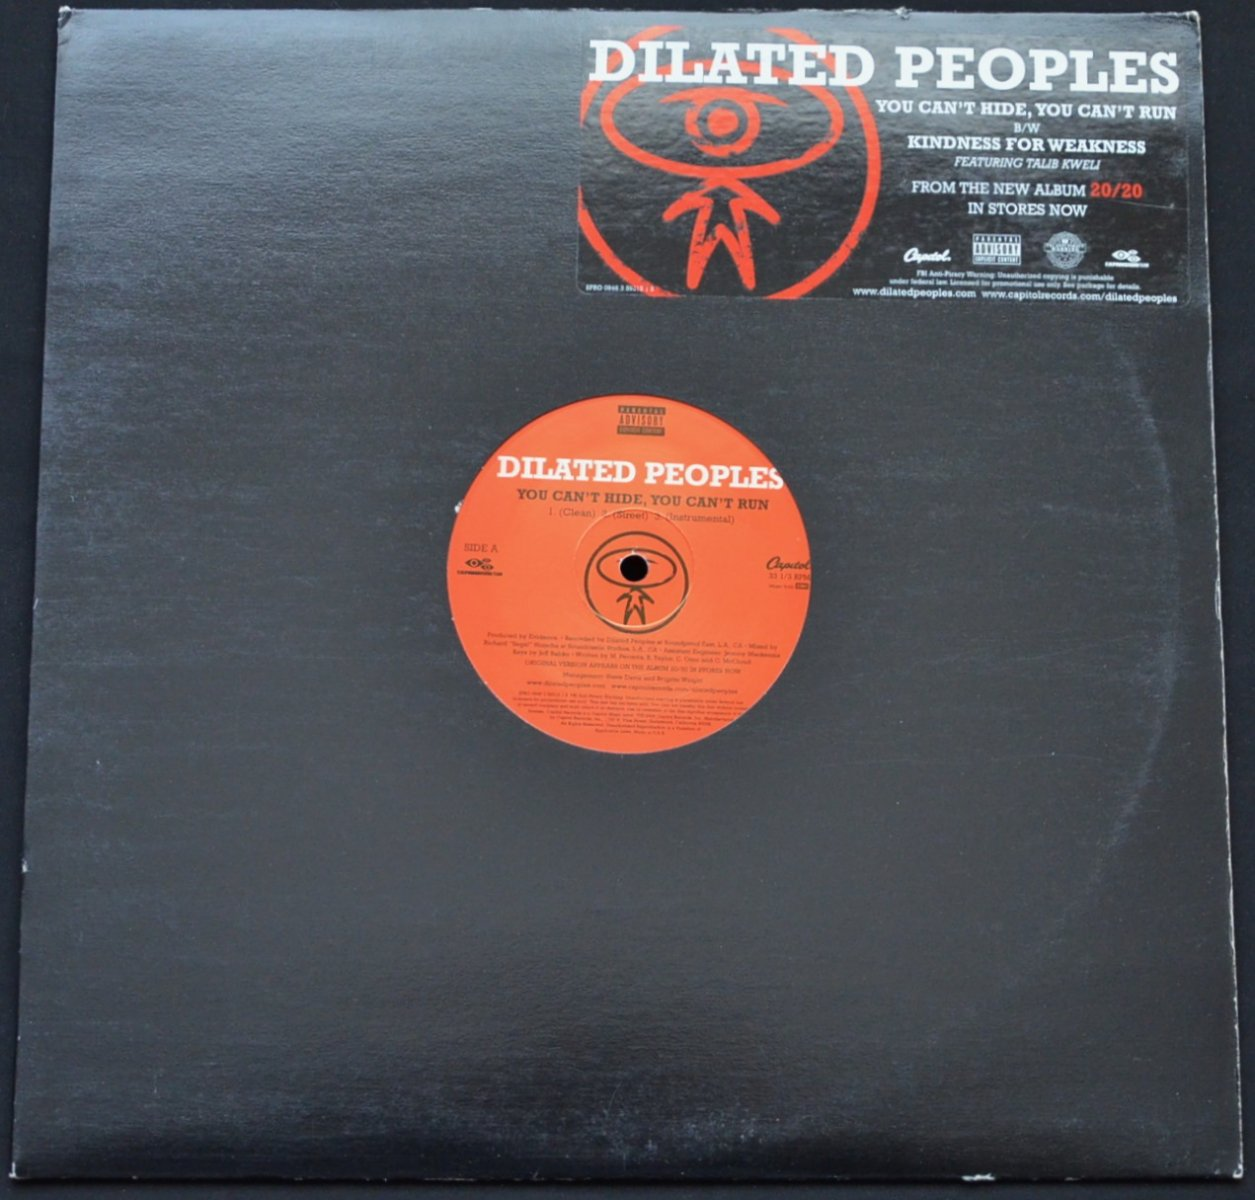 DILATED PEOPLES / YOU CAN'T HIDE, YOU CAN'T RUN / KINDNESS FOR WEAKNESS (PROD BY EVIDENCE) (12